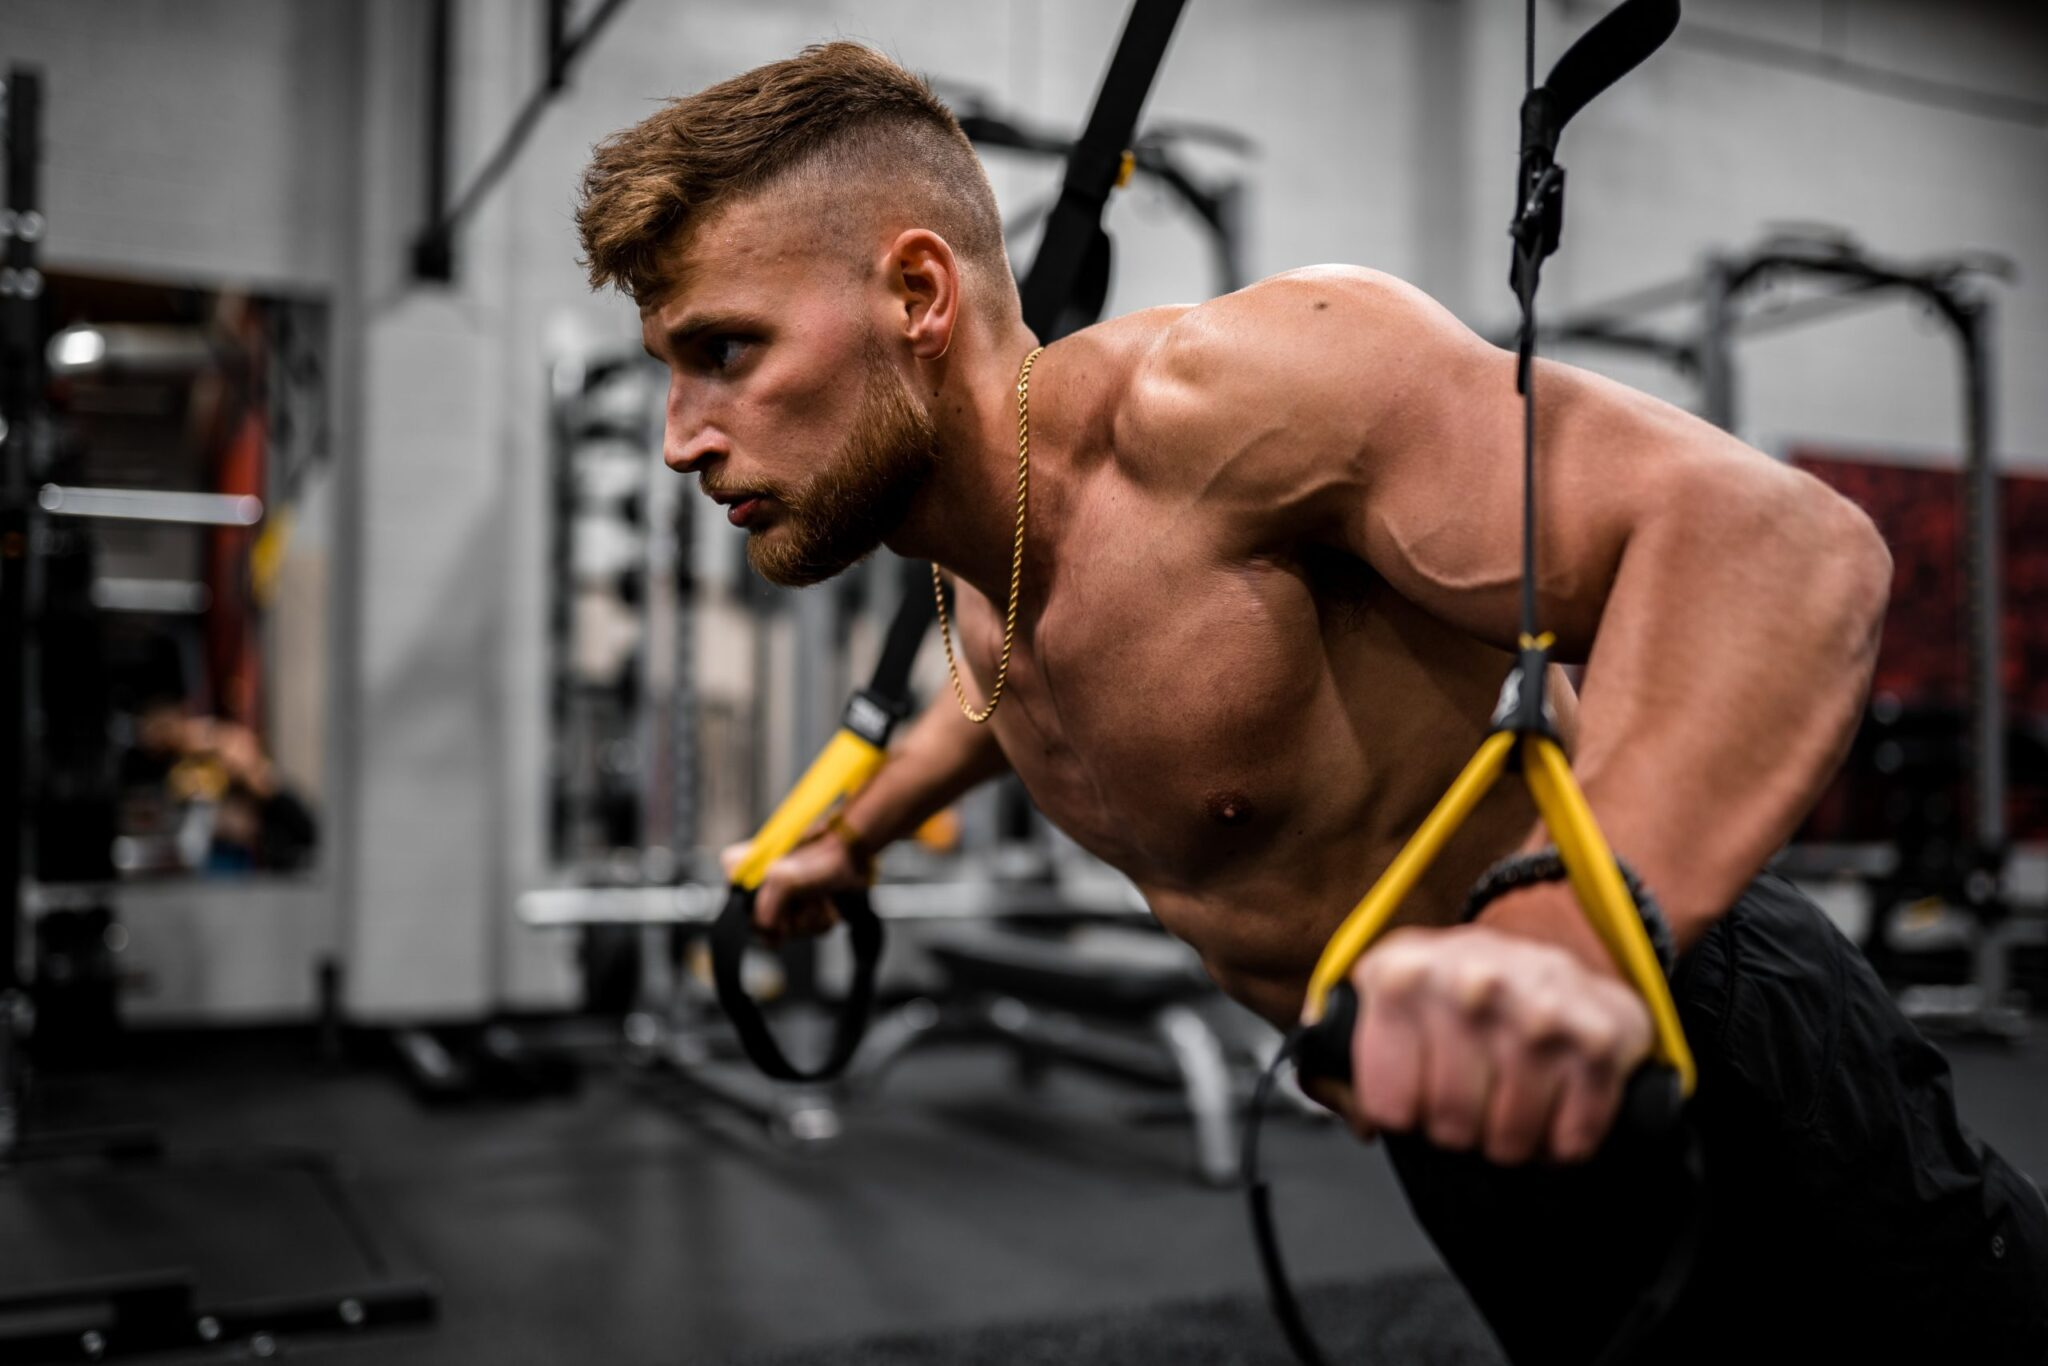 Best Supplement For Cutting Fat and Building Muscle